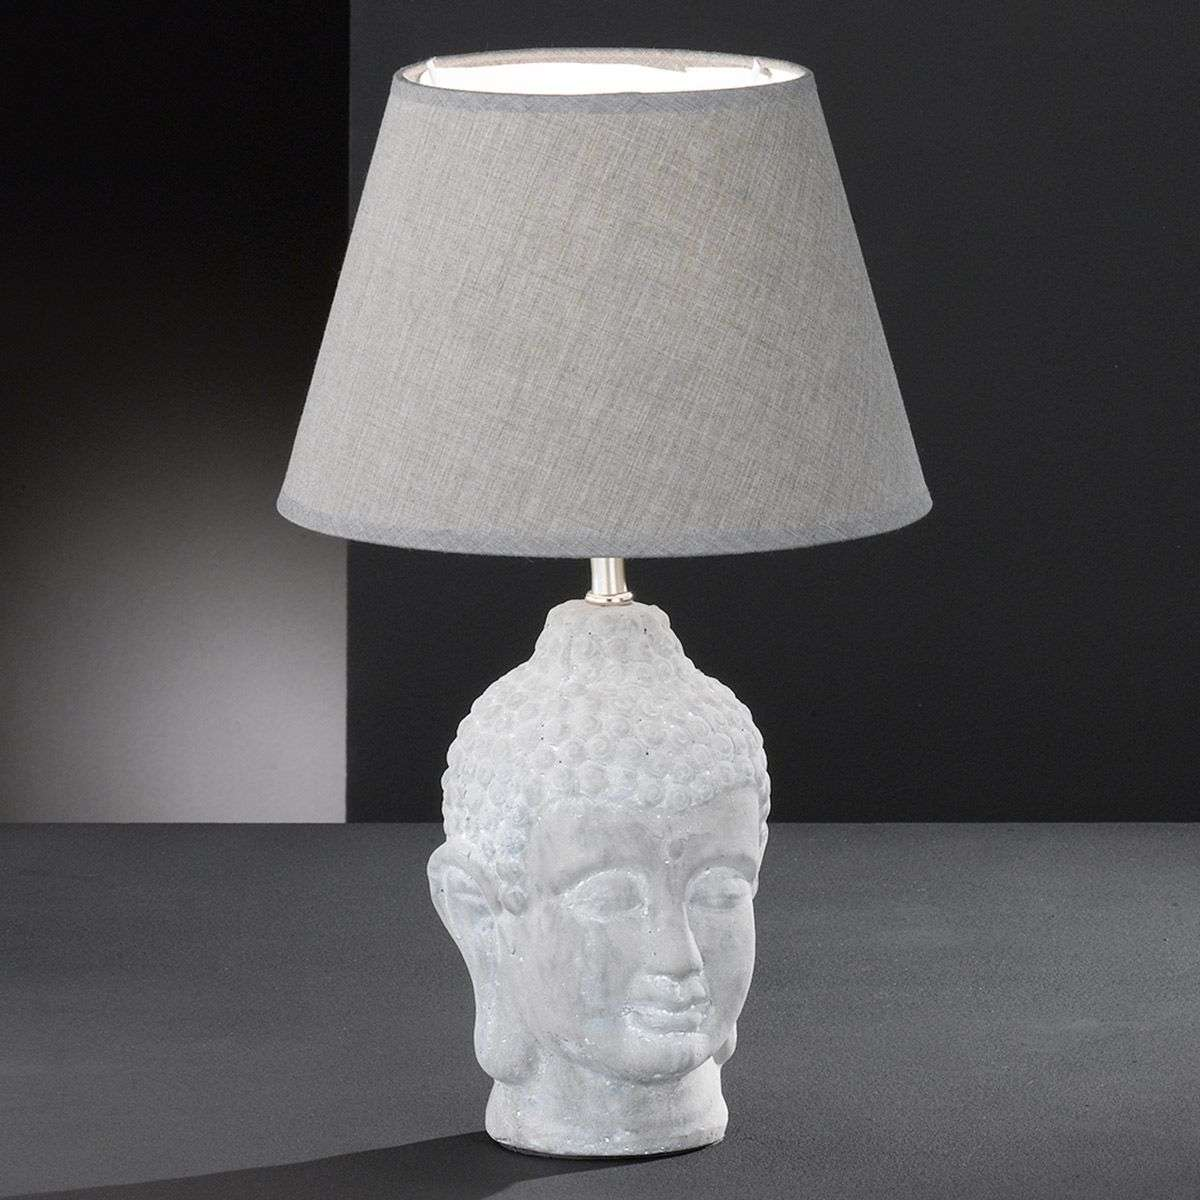 Grey buddha table lamp with a fabric lampshade lights grey buddha table lamp with a fabric lampshade 4581119 31 aloadofball Images